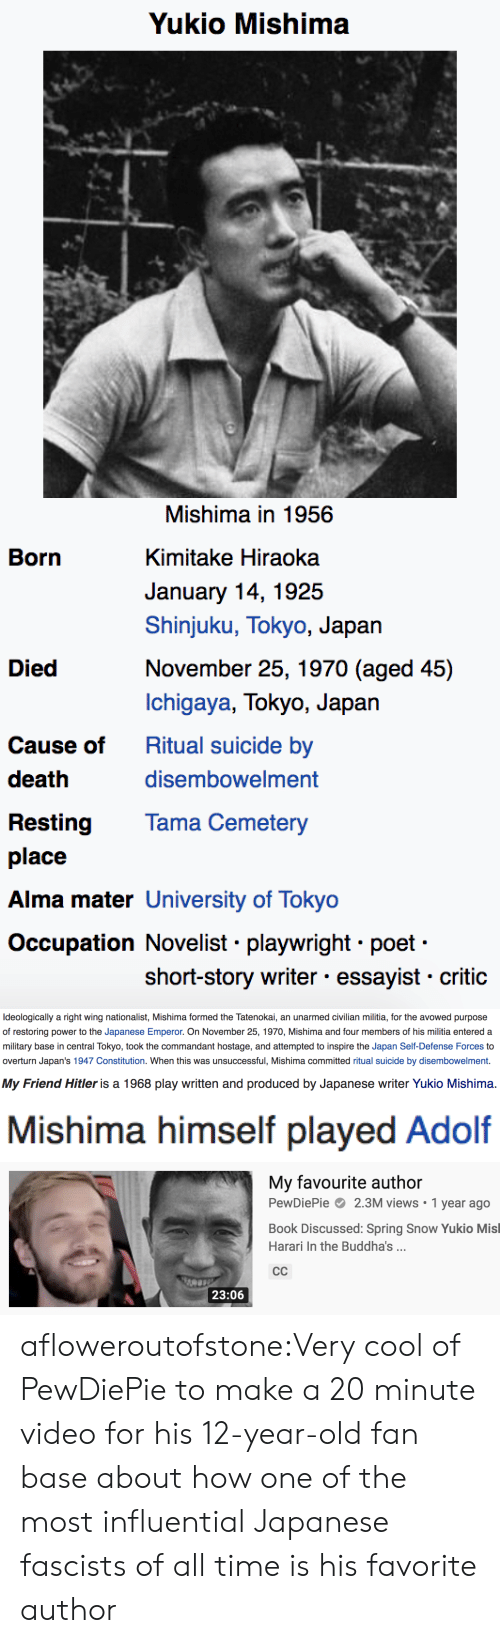 pewdiepie: Yukio Mishima  Mishima in 1956  Born  Kimitake Hiraoka  January 14, 1925  Shinjuku, Tokyo, Japan  November 25, 1970 (aged 45)  Died  Ichigaya, Tokyo, Japan  Ritual suicide by  Cause of  death  disembowelment  Tama Cemetery  Resting  place  Alma mater University of Tokyo  Occupation Novelist playwright poet  short-story writer essayist critic   Ideologically a right wing nationalist, Mishima formed the Tatenokai, an unarmed civilian militia, for the avowed purpose  of restoring power to the Japanese Emperor. On November 25, 1970, Mishima and four members of his militia entered a  military base in central Tokyo, took the commandant hostage, and attempted to inspire the Japan Self-Defense Forces to  overturn Japan's 1947 Constitution. When this was unsuccessful, Mishima committed ritual suicide by disembowelment.   My Friend Hitler is a 1968 play written and produced by Japanese writer Yukio Mishima.   Mishima himself played Adolf   My favourite author  PewDiePie 2.3M views 1 year ago  Book Discussed: Spring Snow Yukio Misl  Harari In the Buddha's .  СС  23:06 afloweroutofstone:Very cool of PewDiePie to make a 20 minute video for his 12-year-old fan base about how one of the most influential Japanese fascists of all time is his favorite author